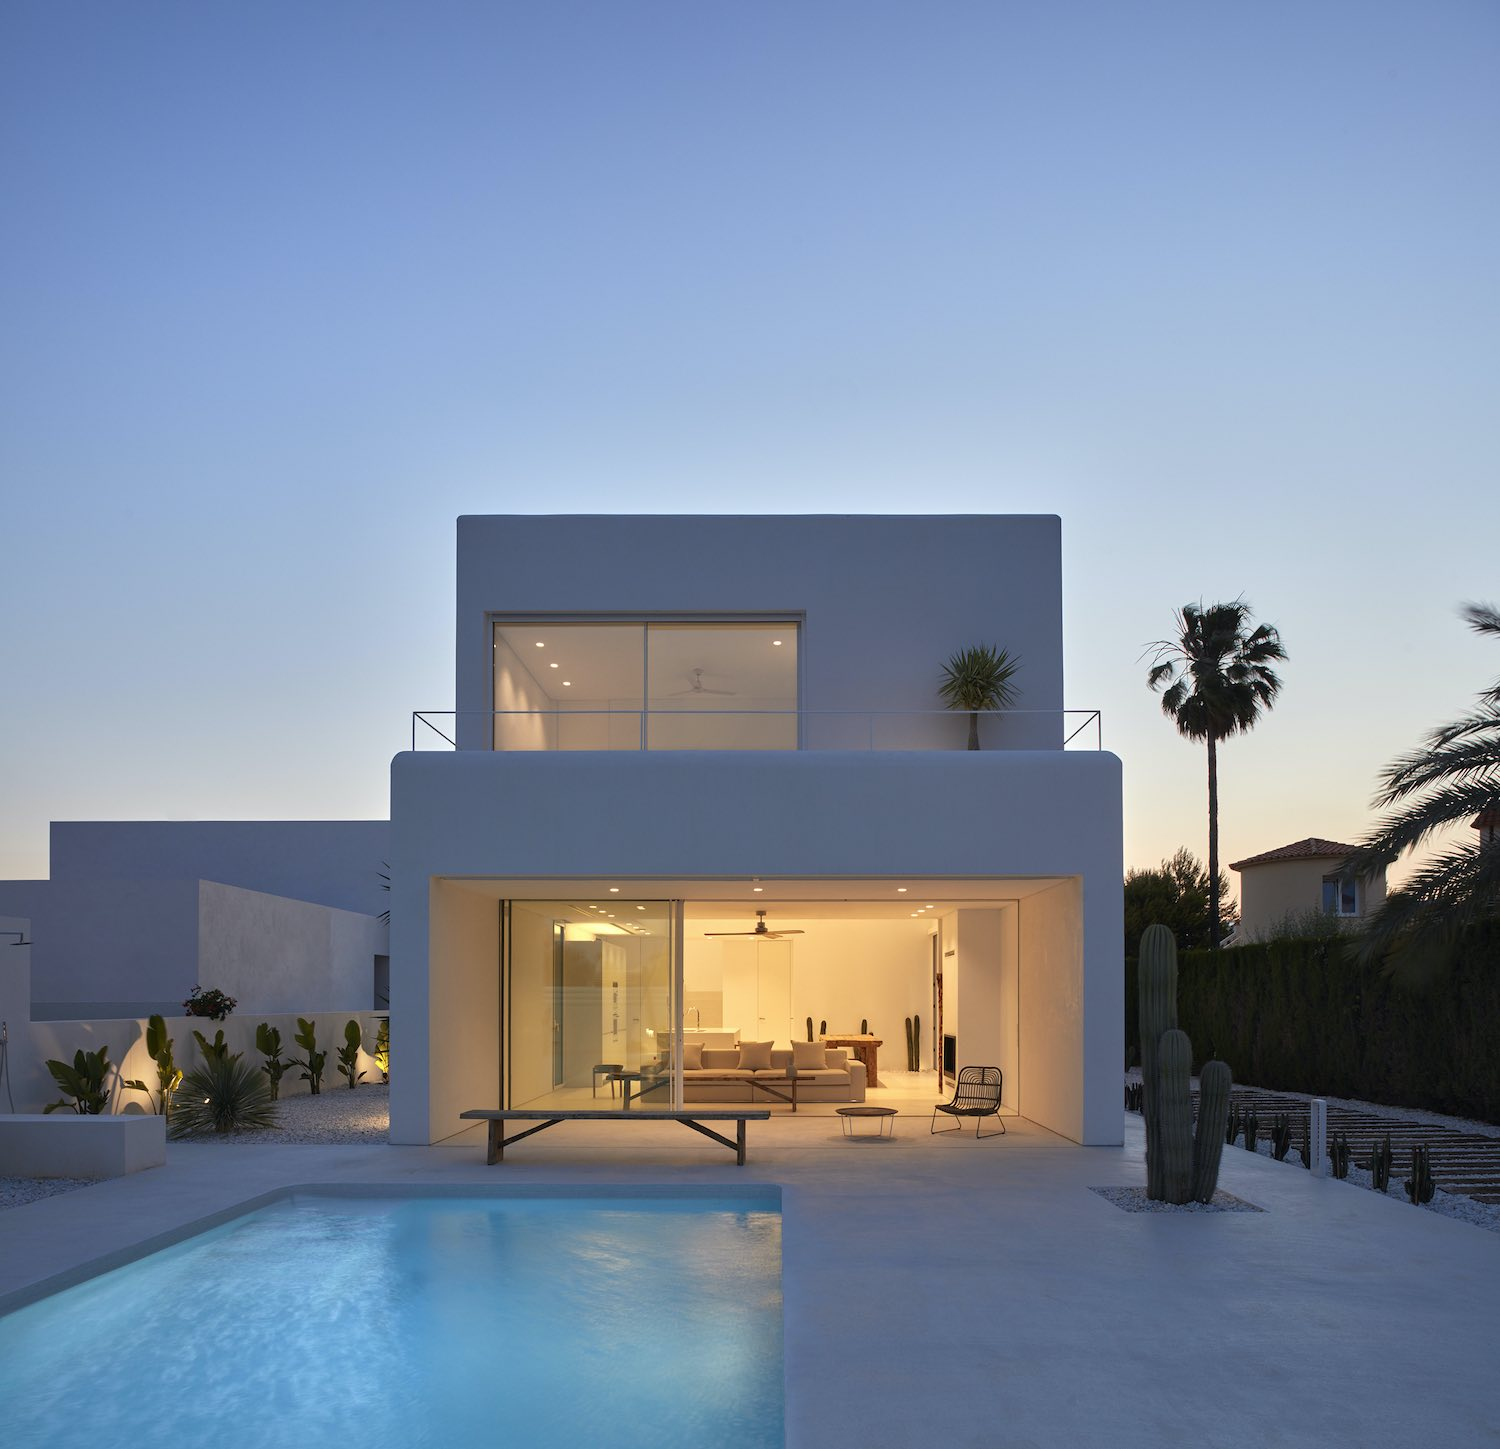 house with illumination and pool at night